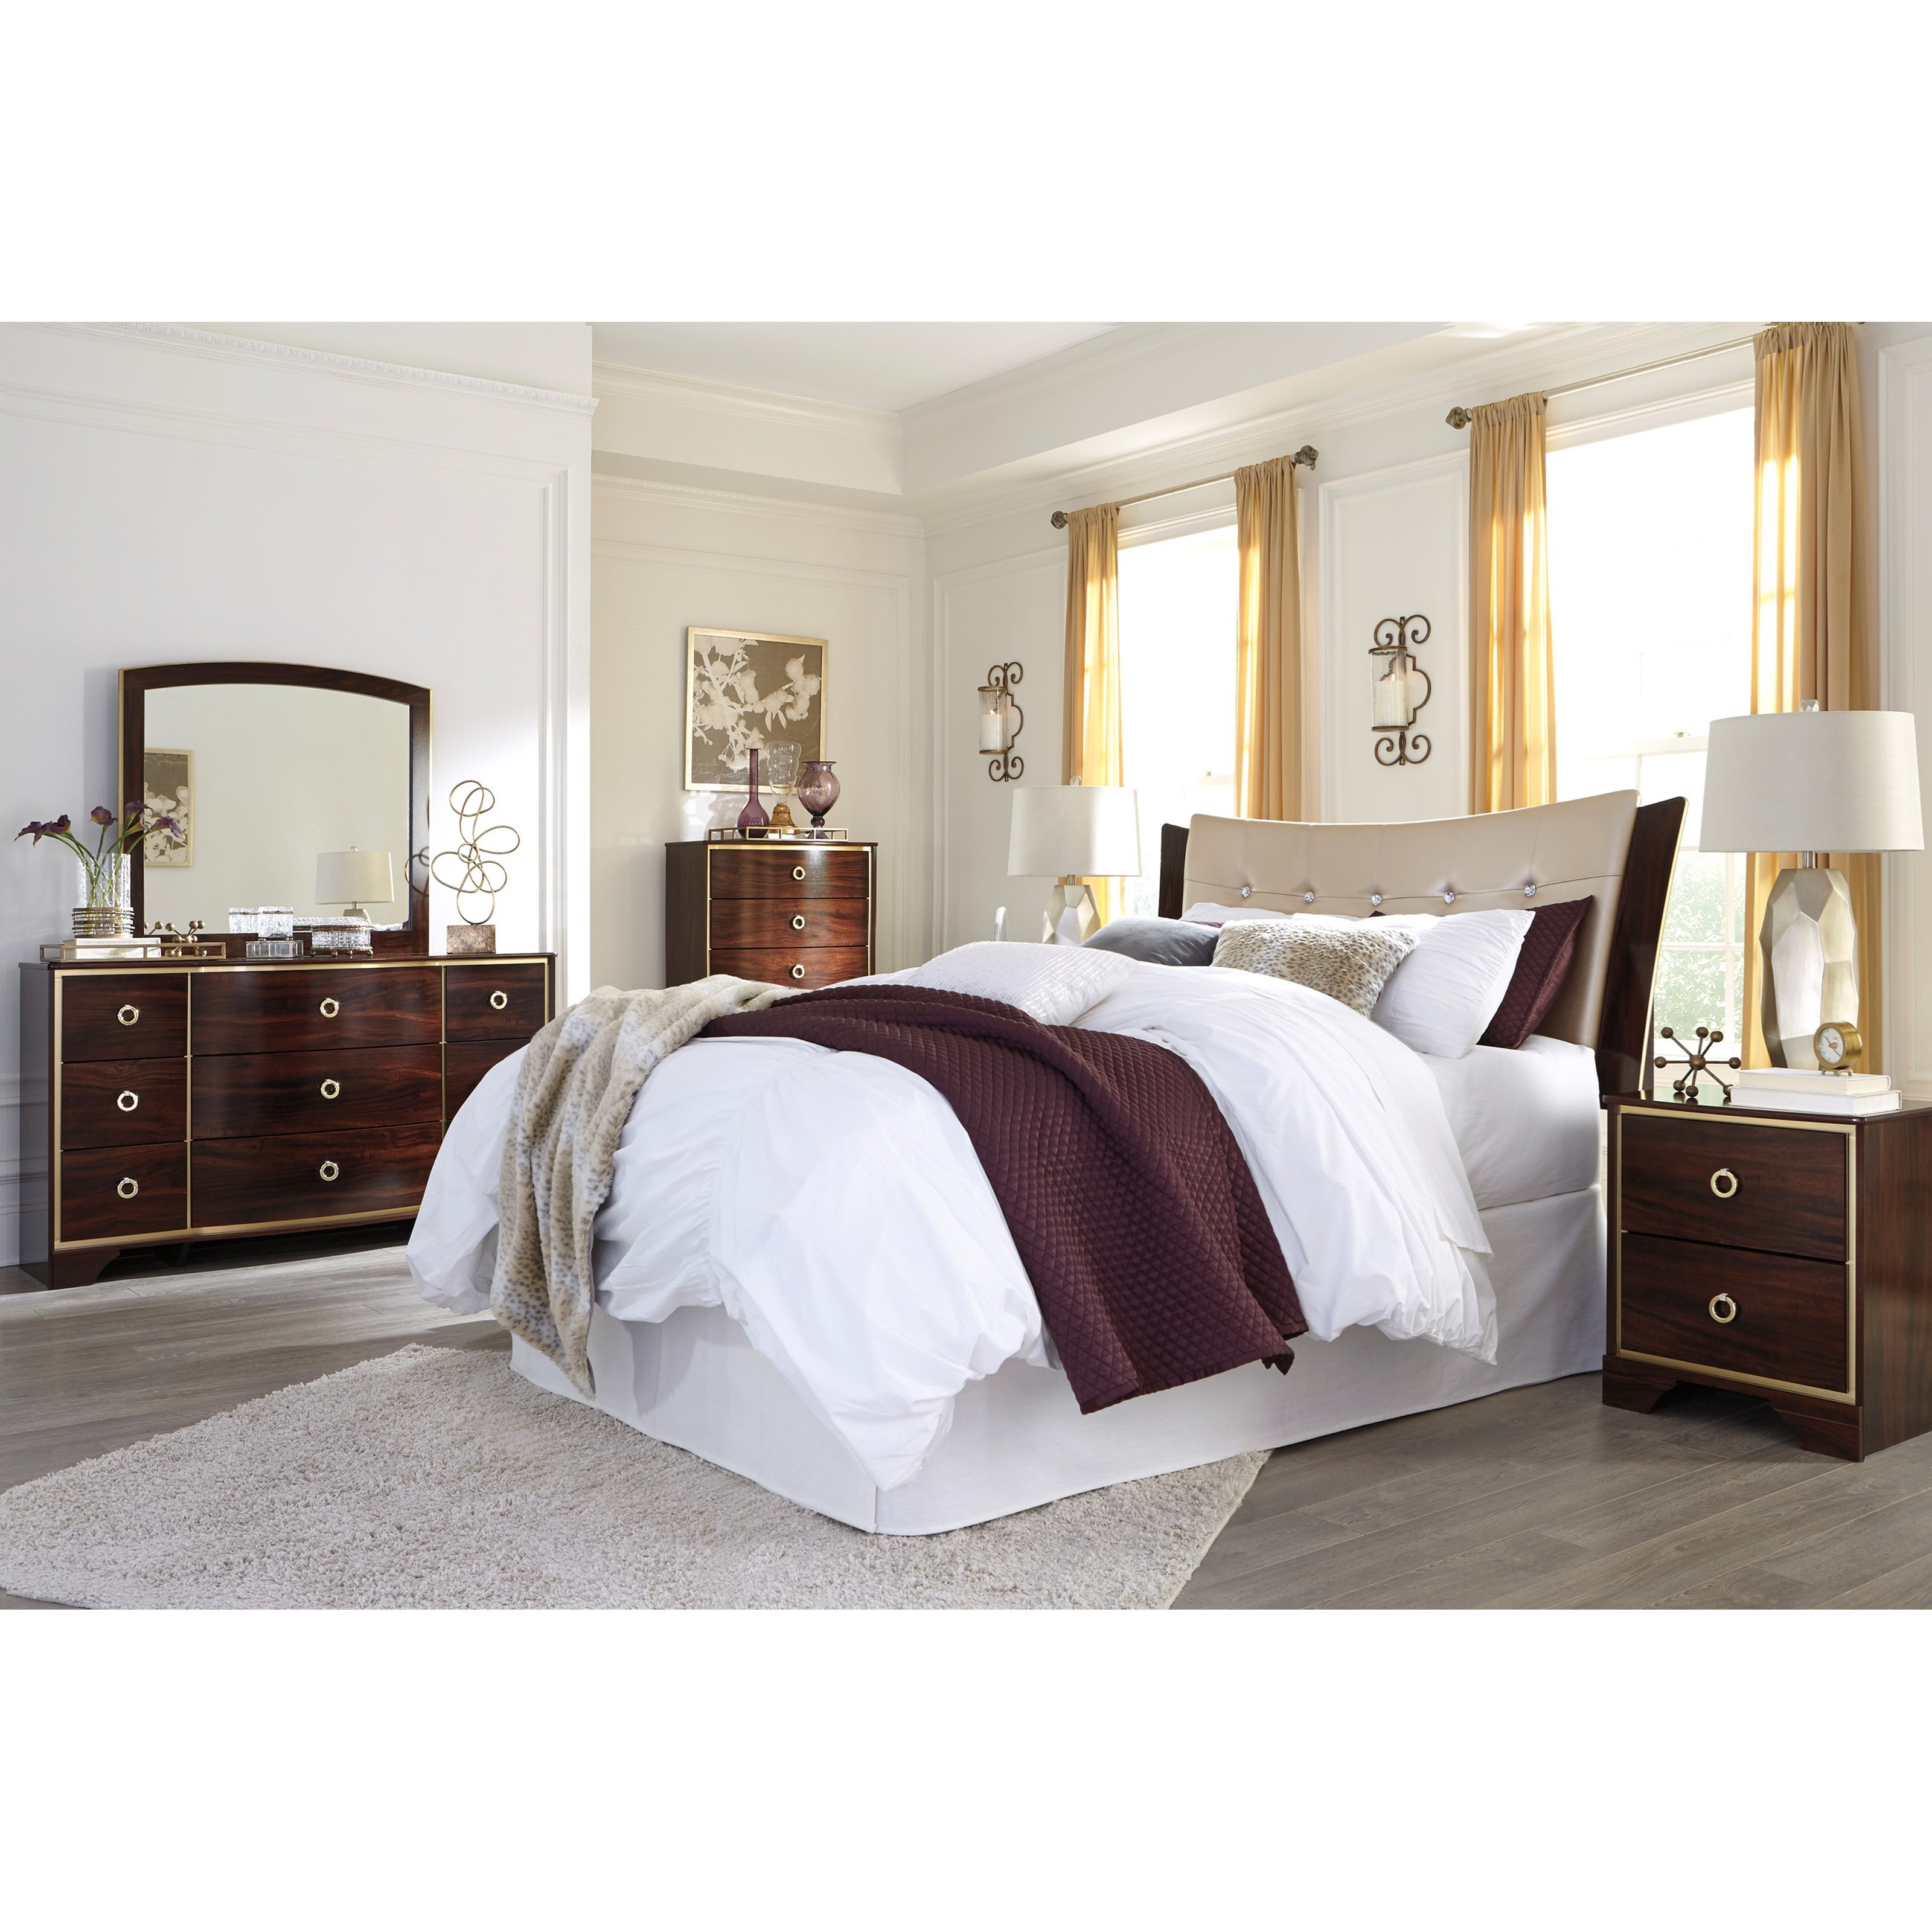 Signature design by ashley lenmara queen full bedroom for Bedroom furniture groups